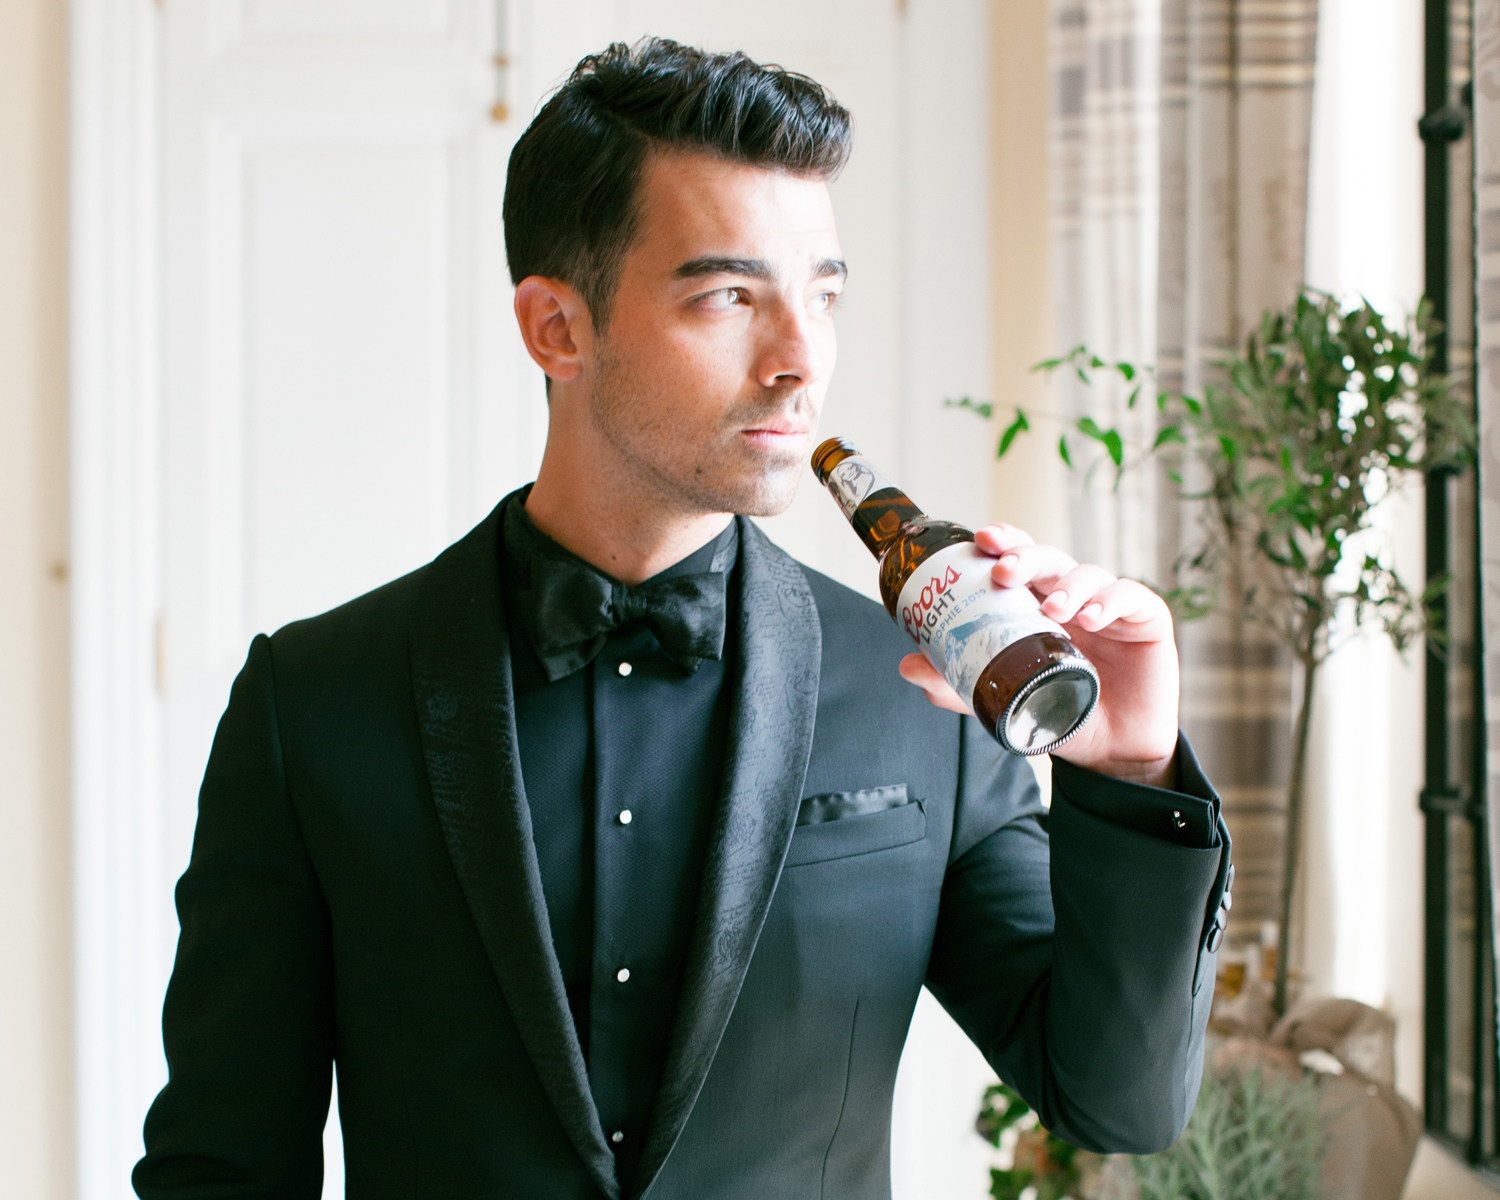 Joe jonas coors light bottle custom wedding to sophie turner